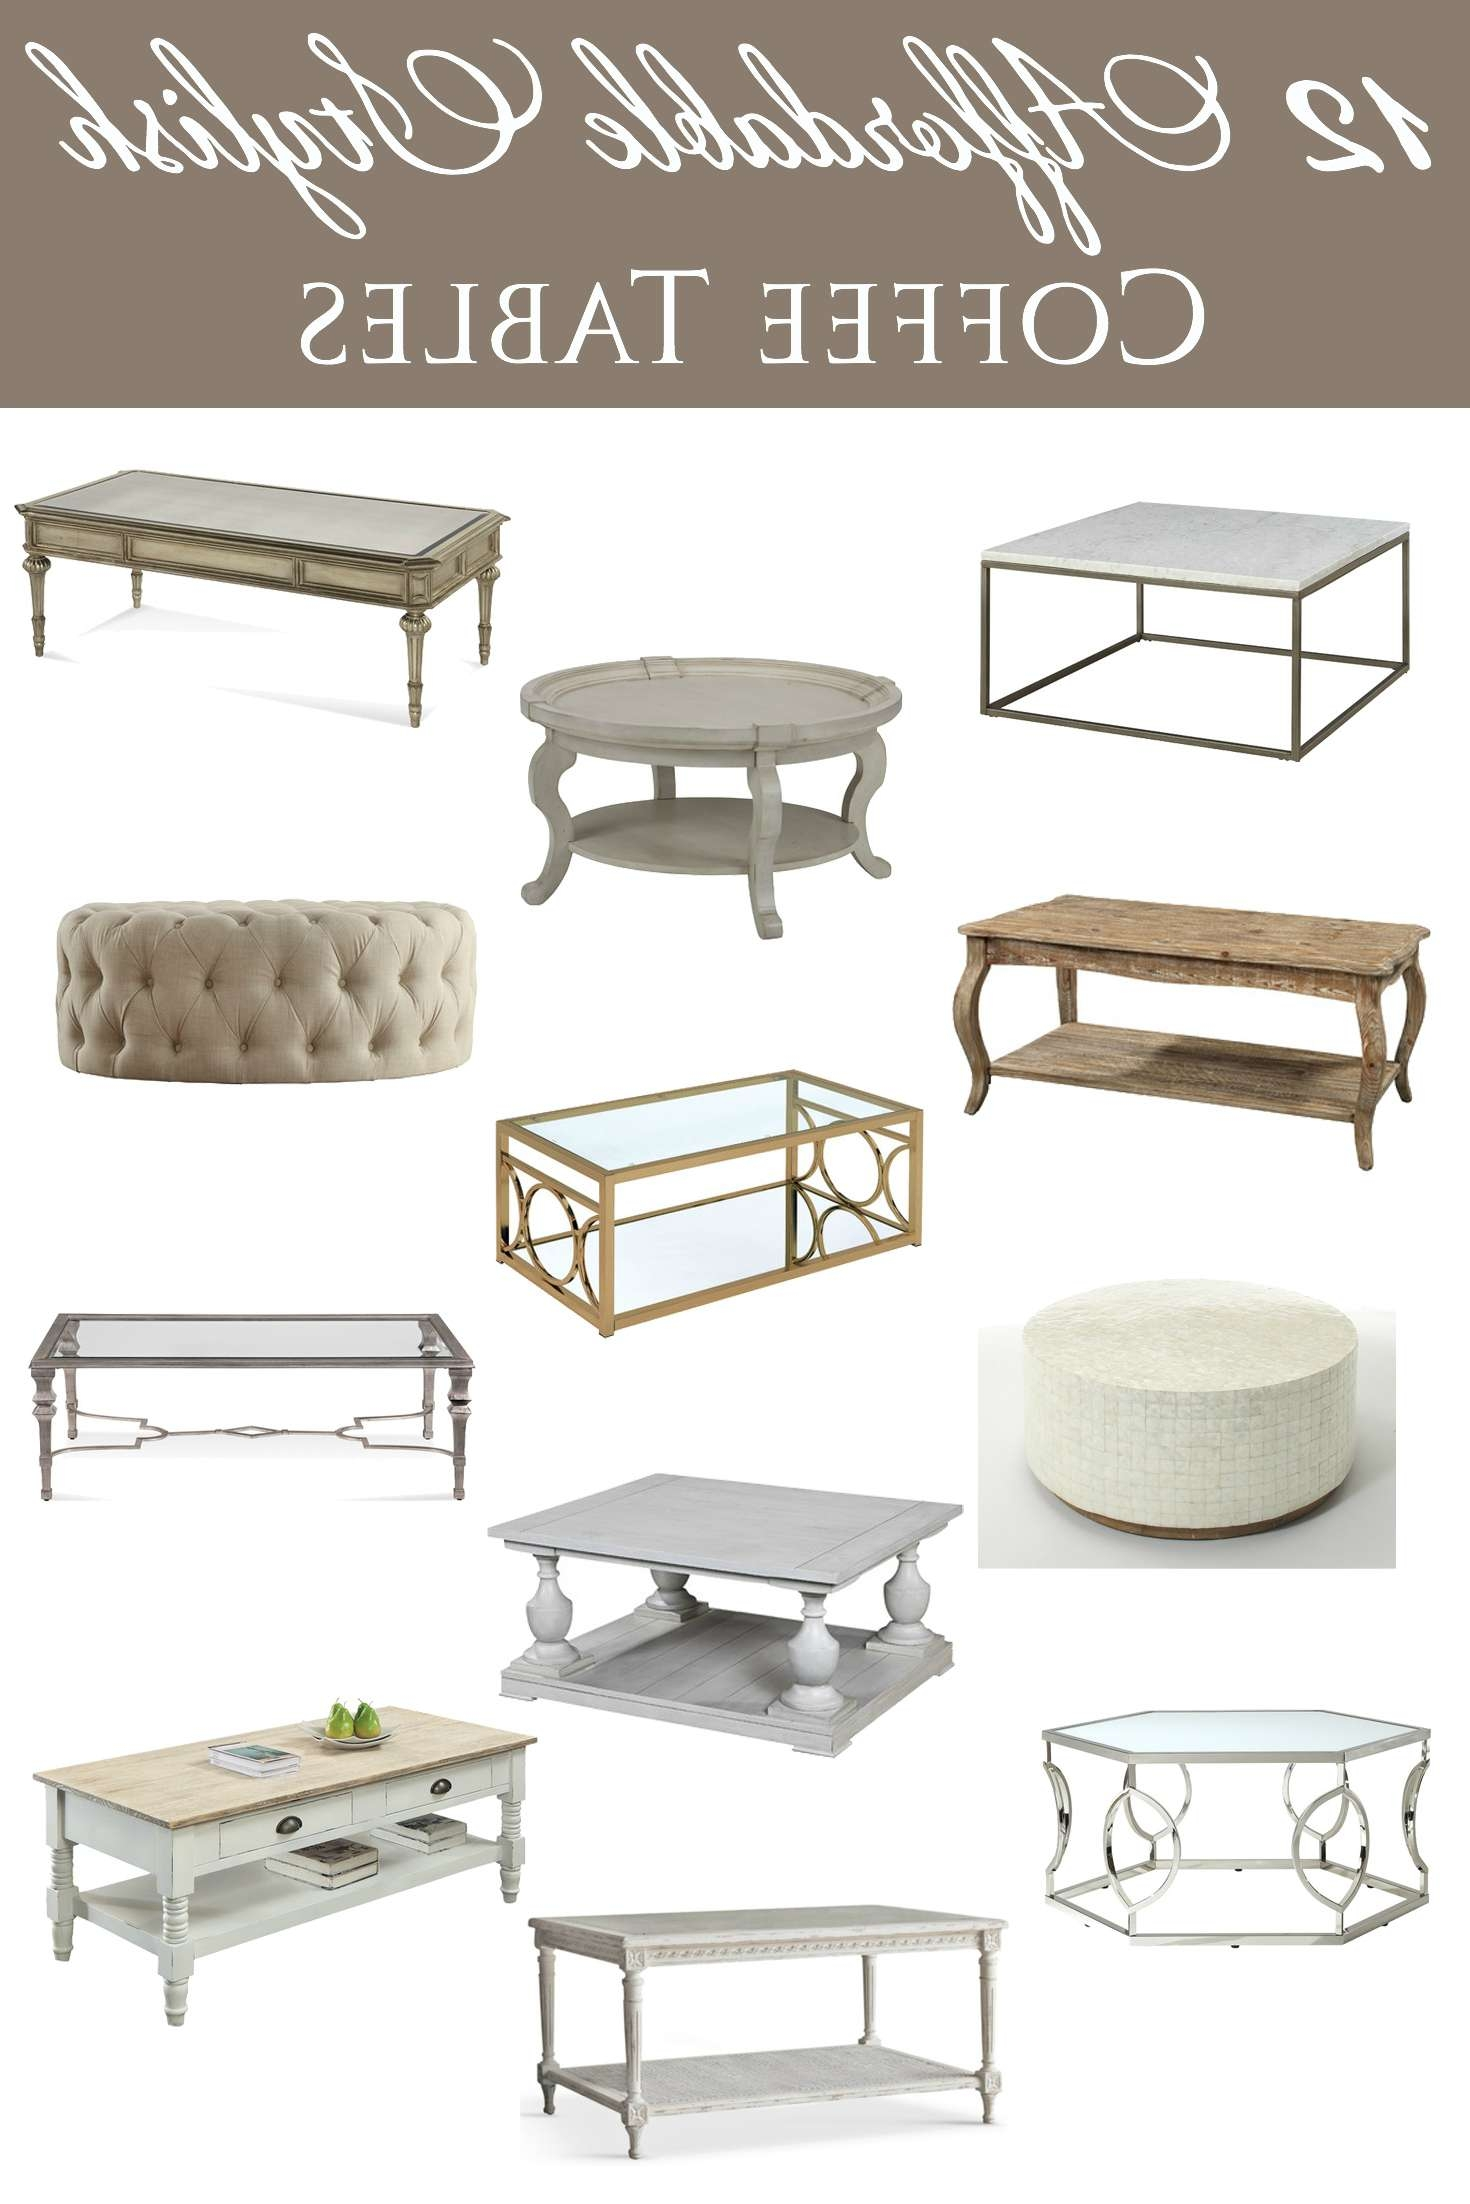 12 Affordable Stylish Coffee Tables Throughout Popular Stylish Coffee Tables (Gallery 4 of 20)